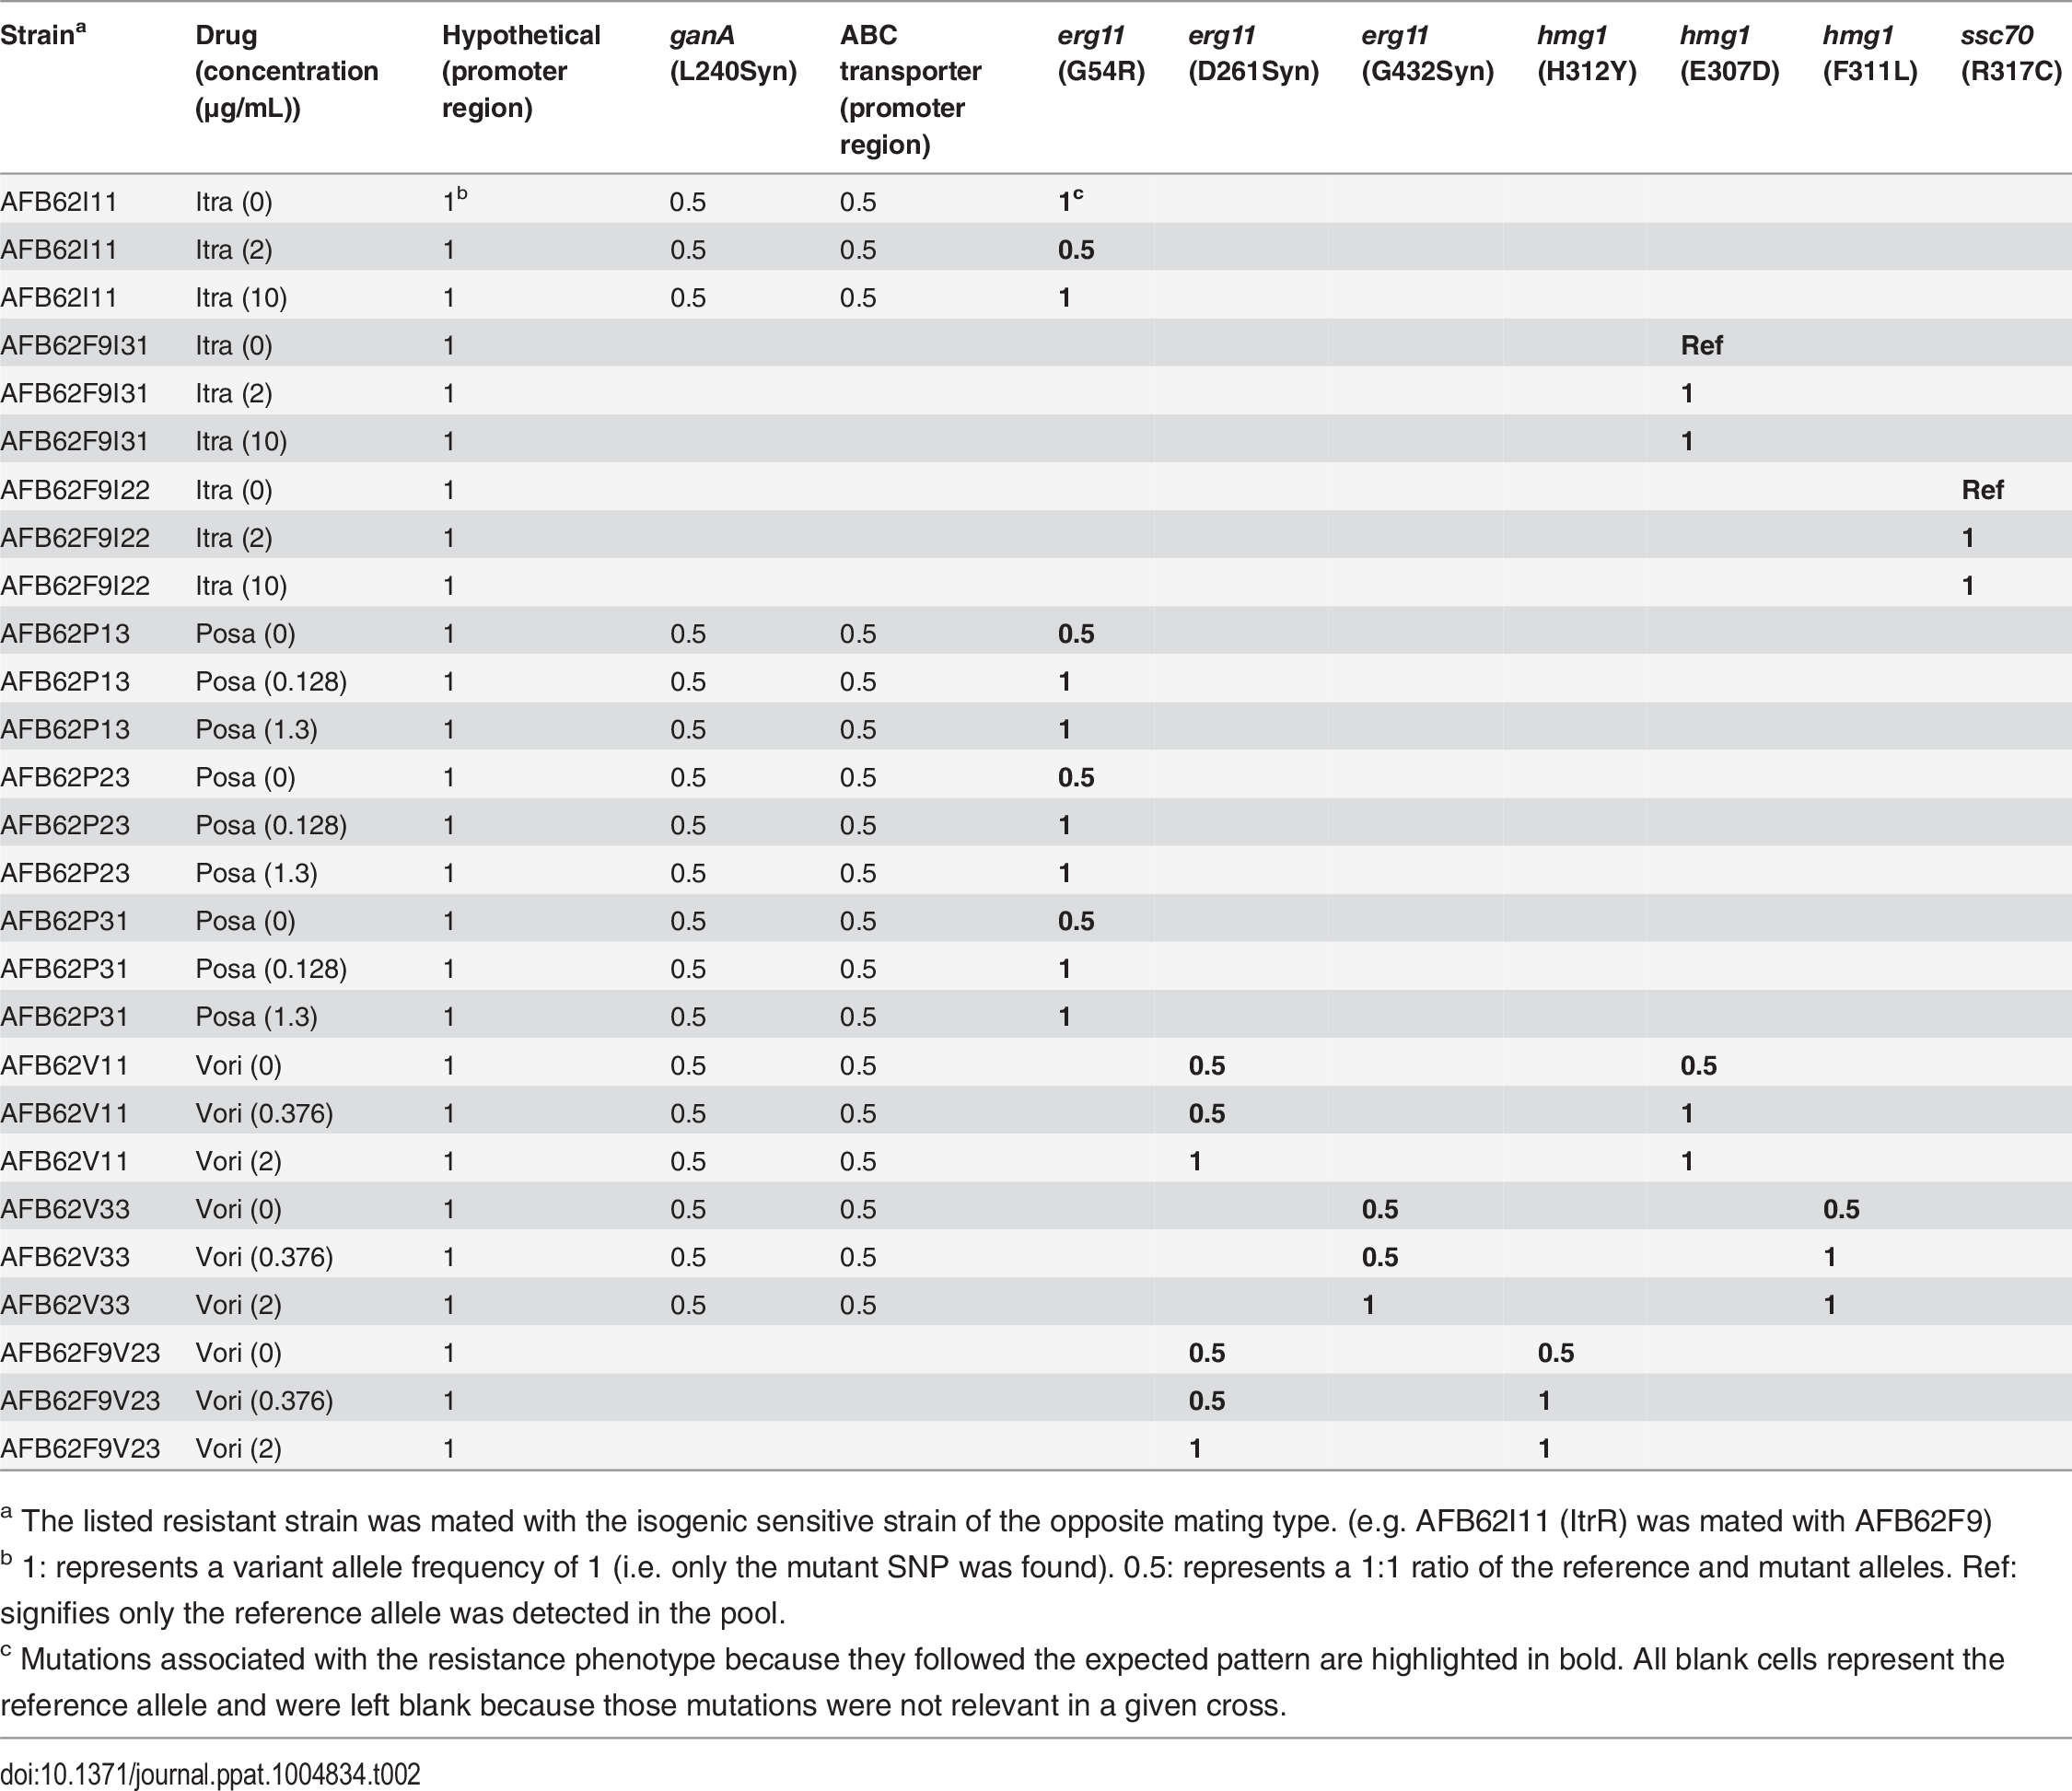 Variant allele frequencies of relevant mutations in sequenced pools of mating offspring under no drug, intermediate, and high-level selection for each drug.